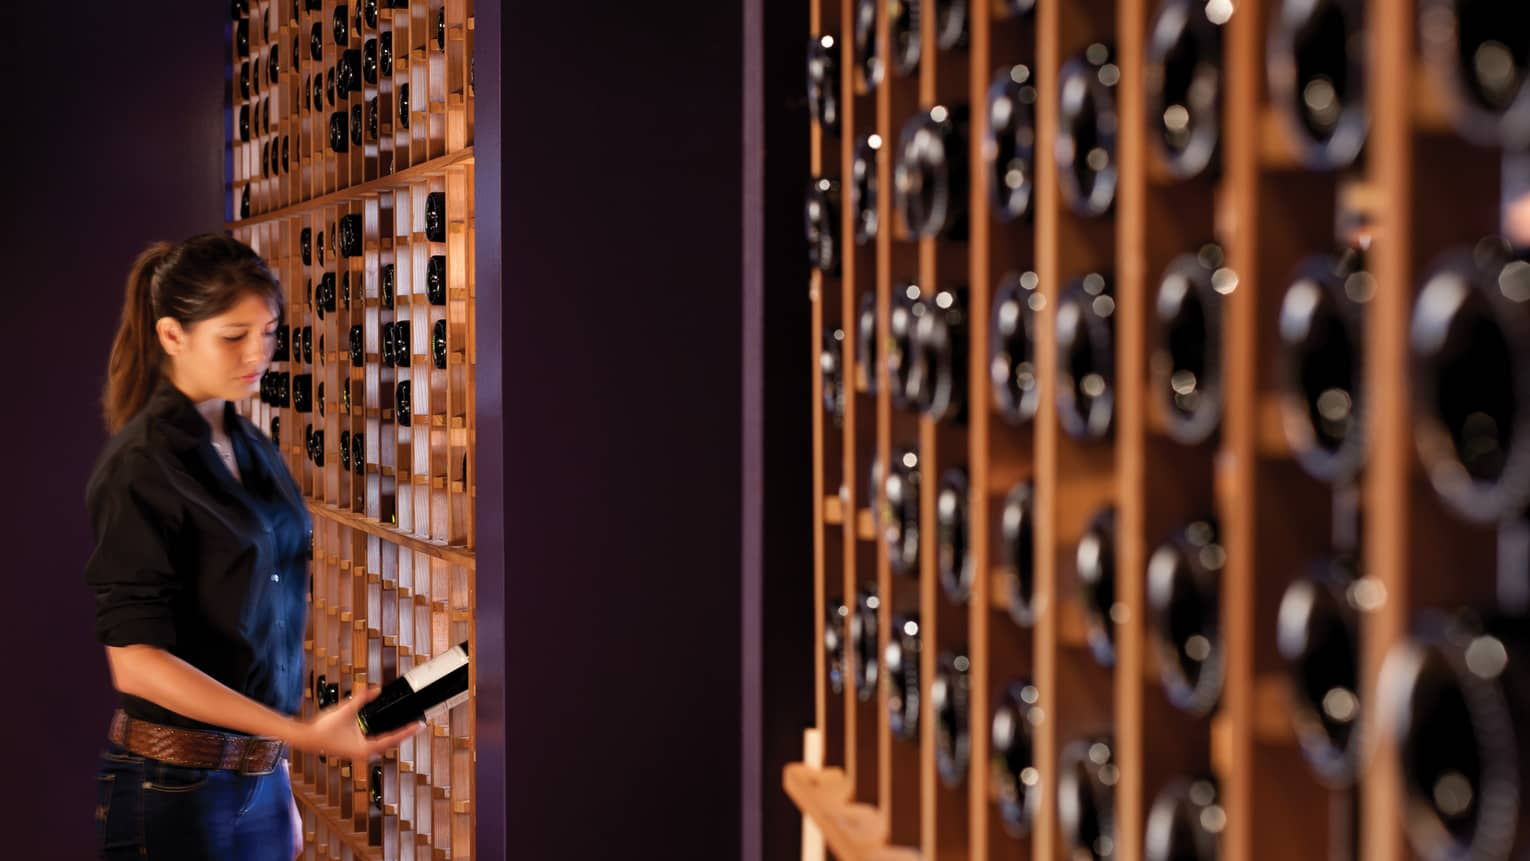 Woman in black button-up shirt and jeans retrieves a wine bottle from cellar rack